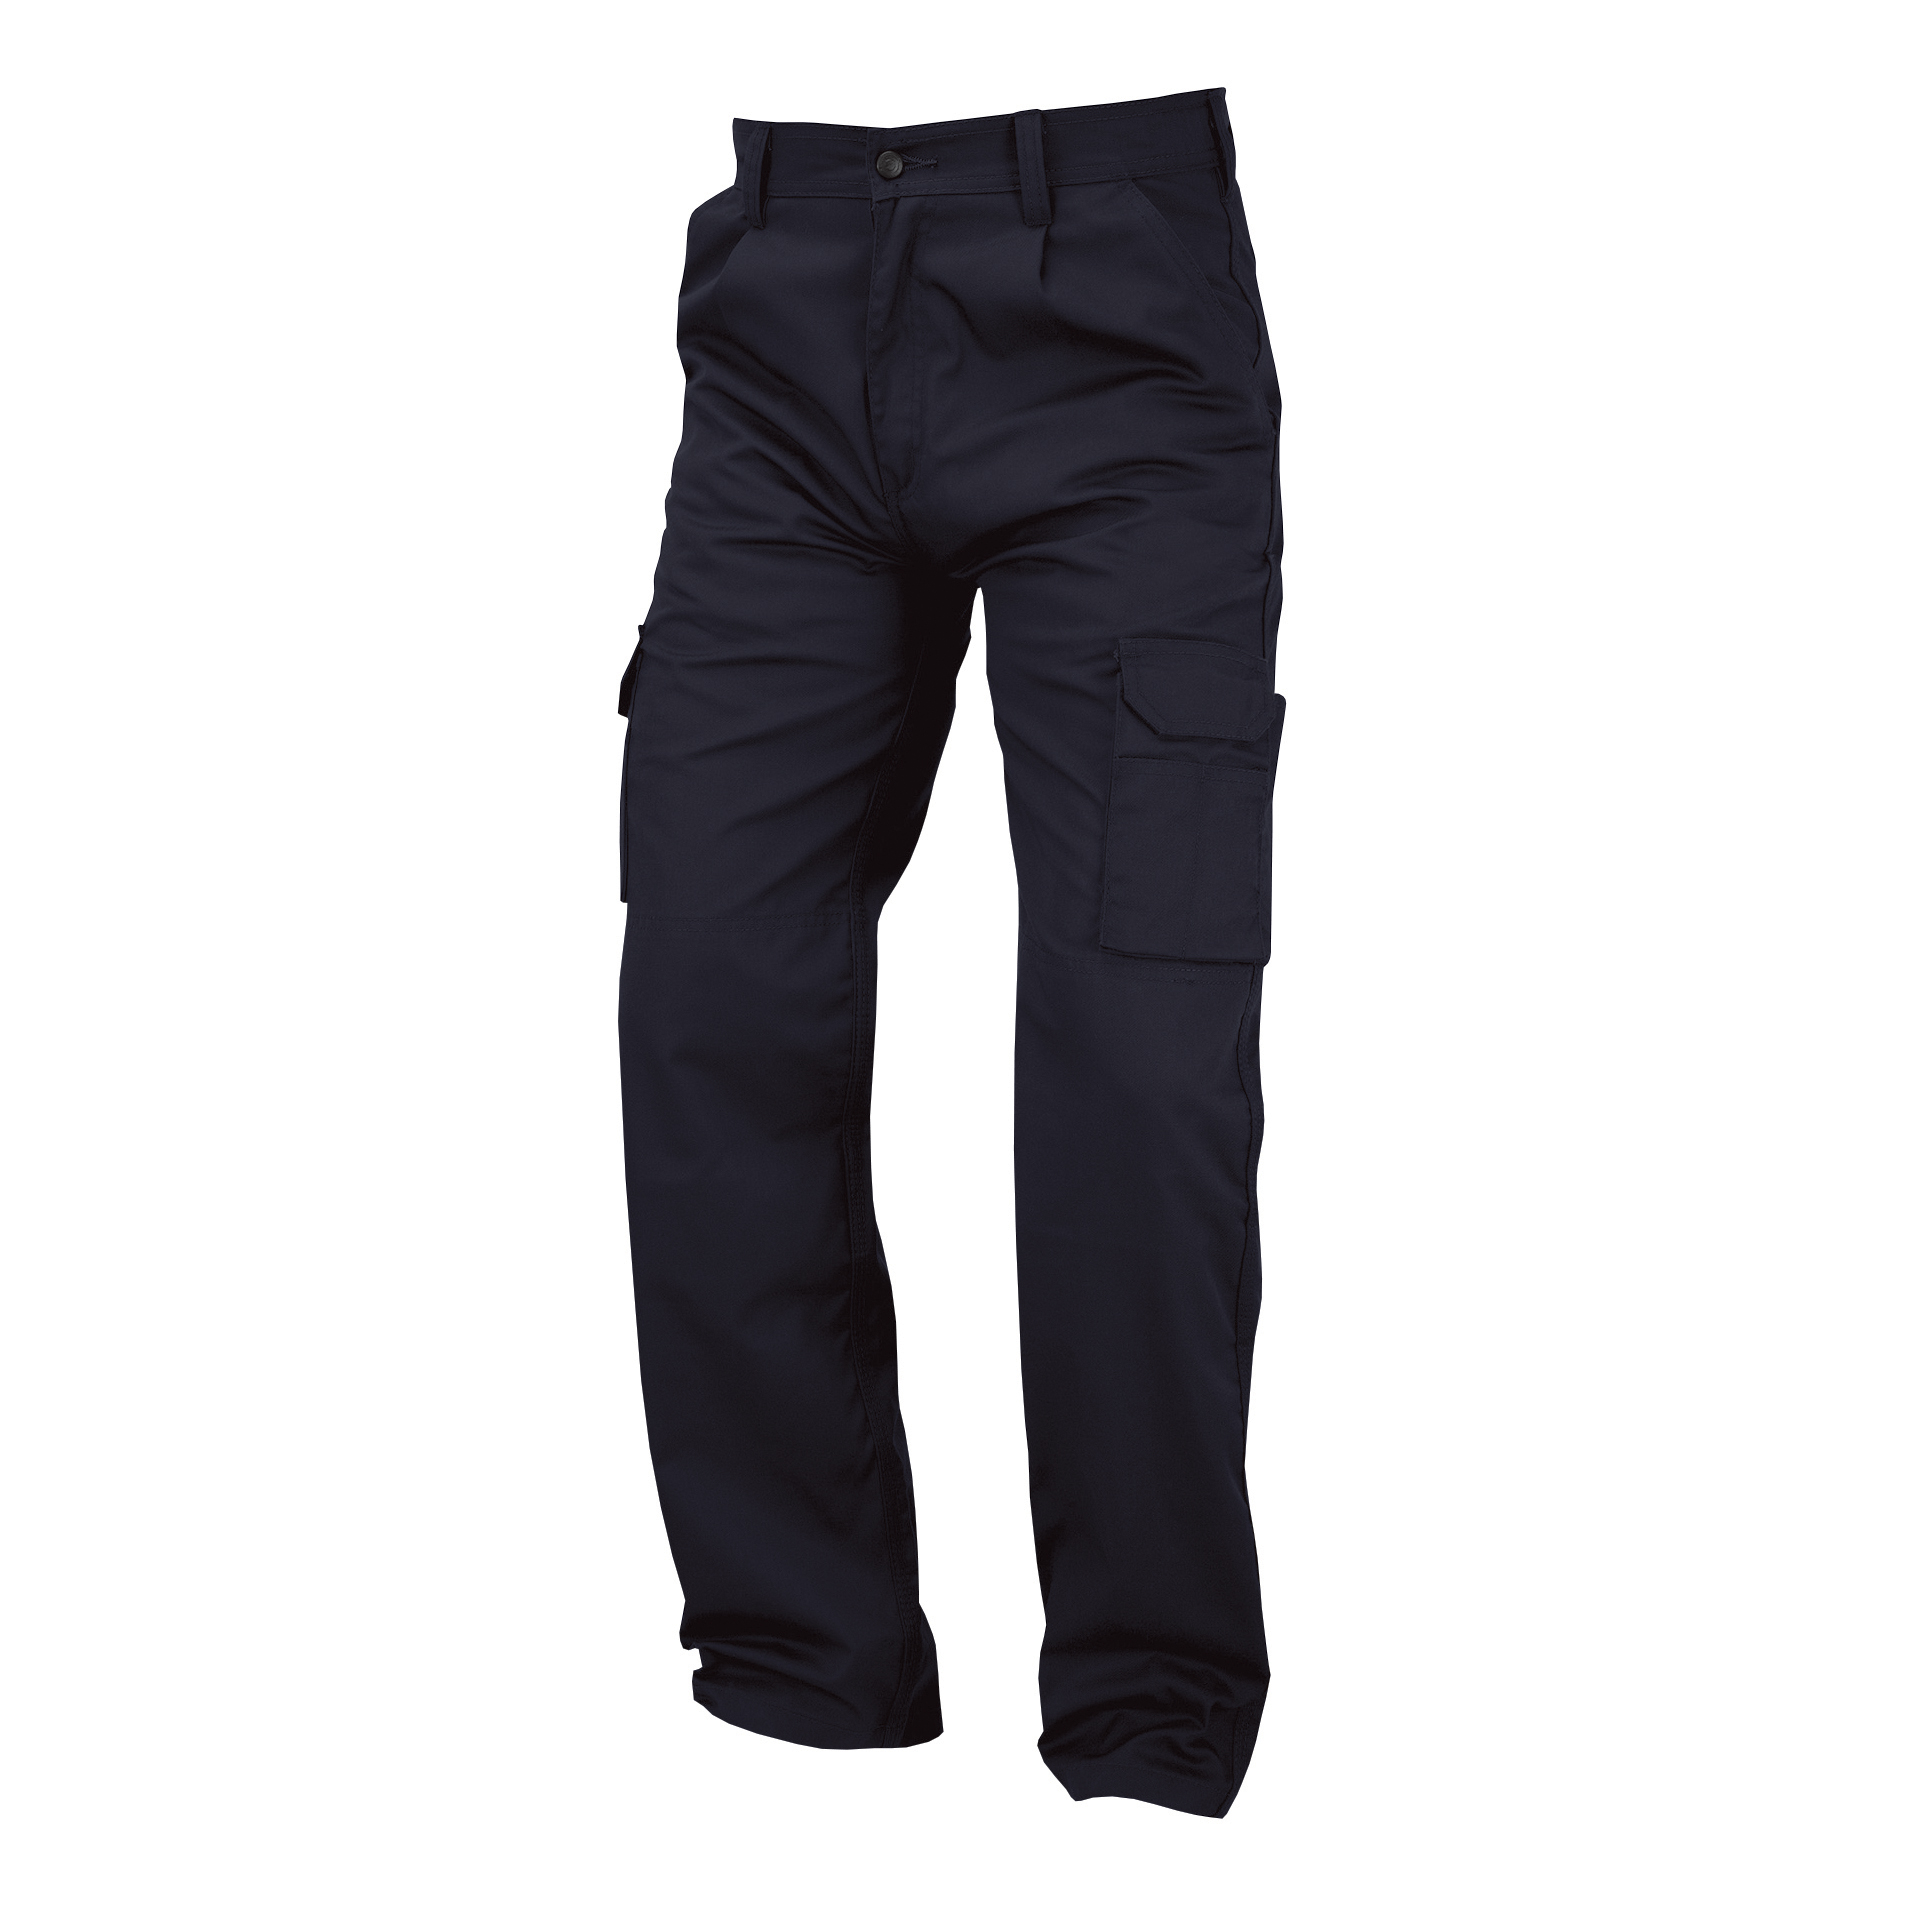 Combat Trousers Polycotton with Pockets 40in Regular Navy Blue Ref PCTHWN40 1-3 Days Lead Time